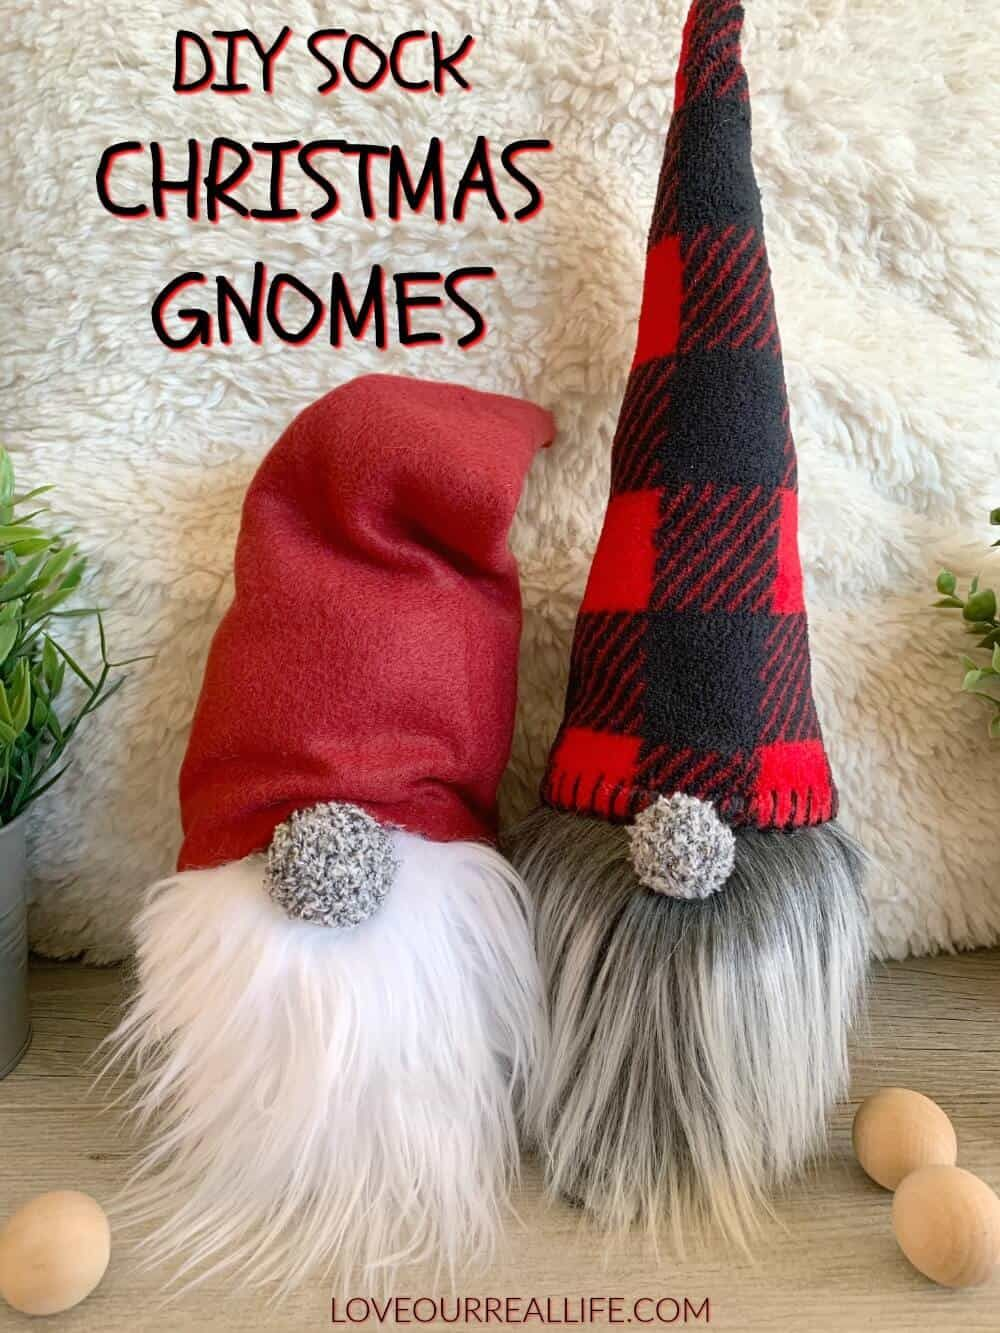 How to Make Christmas Gnomes Sew and No Sew Sock Instructions ...